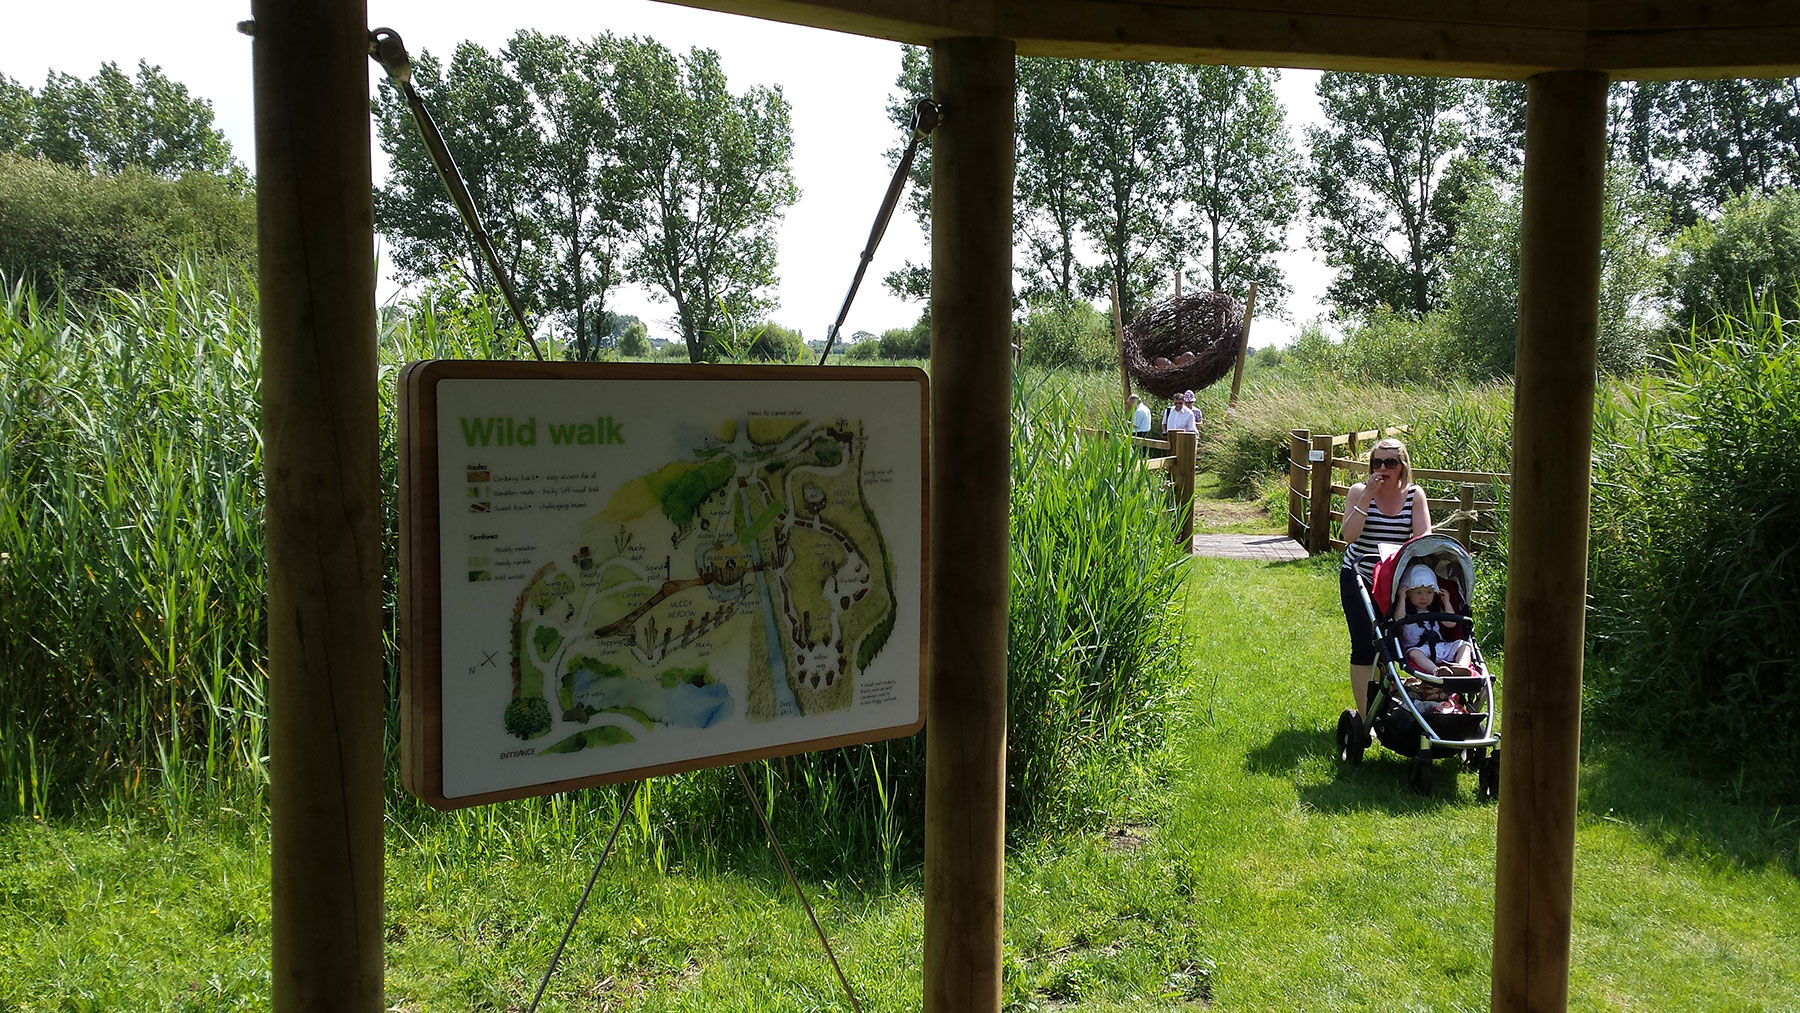 Wetland adventure trail